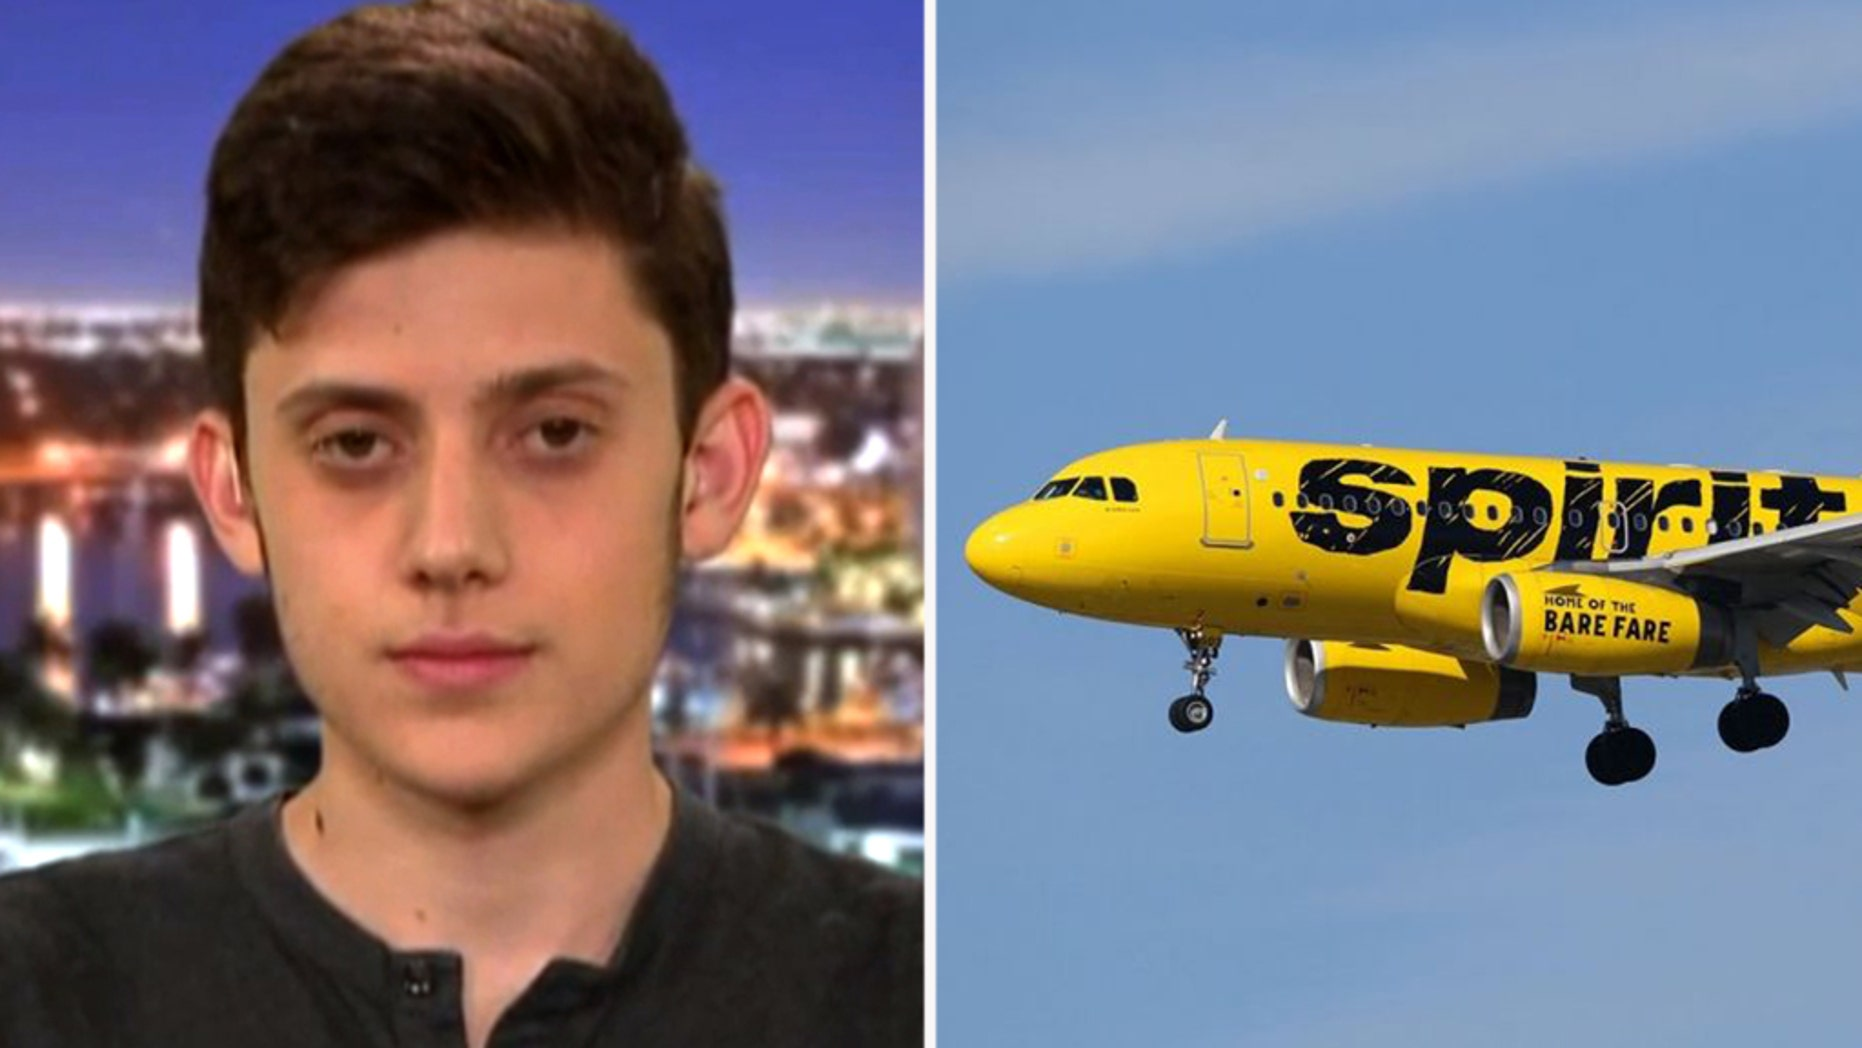 The high school junior shared his frustration over the in-flight incident on Twitter.